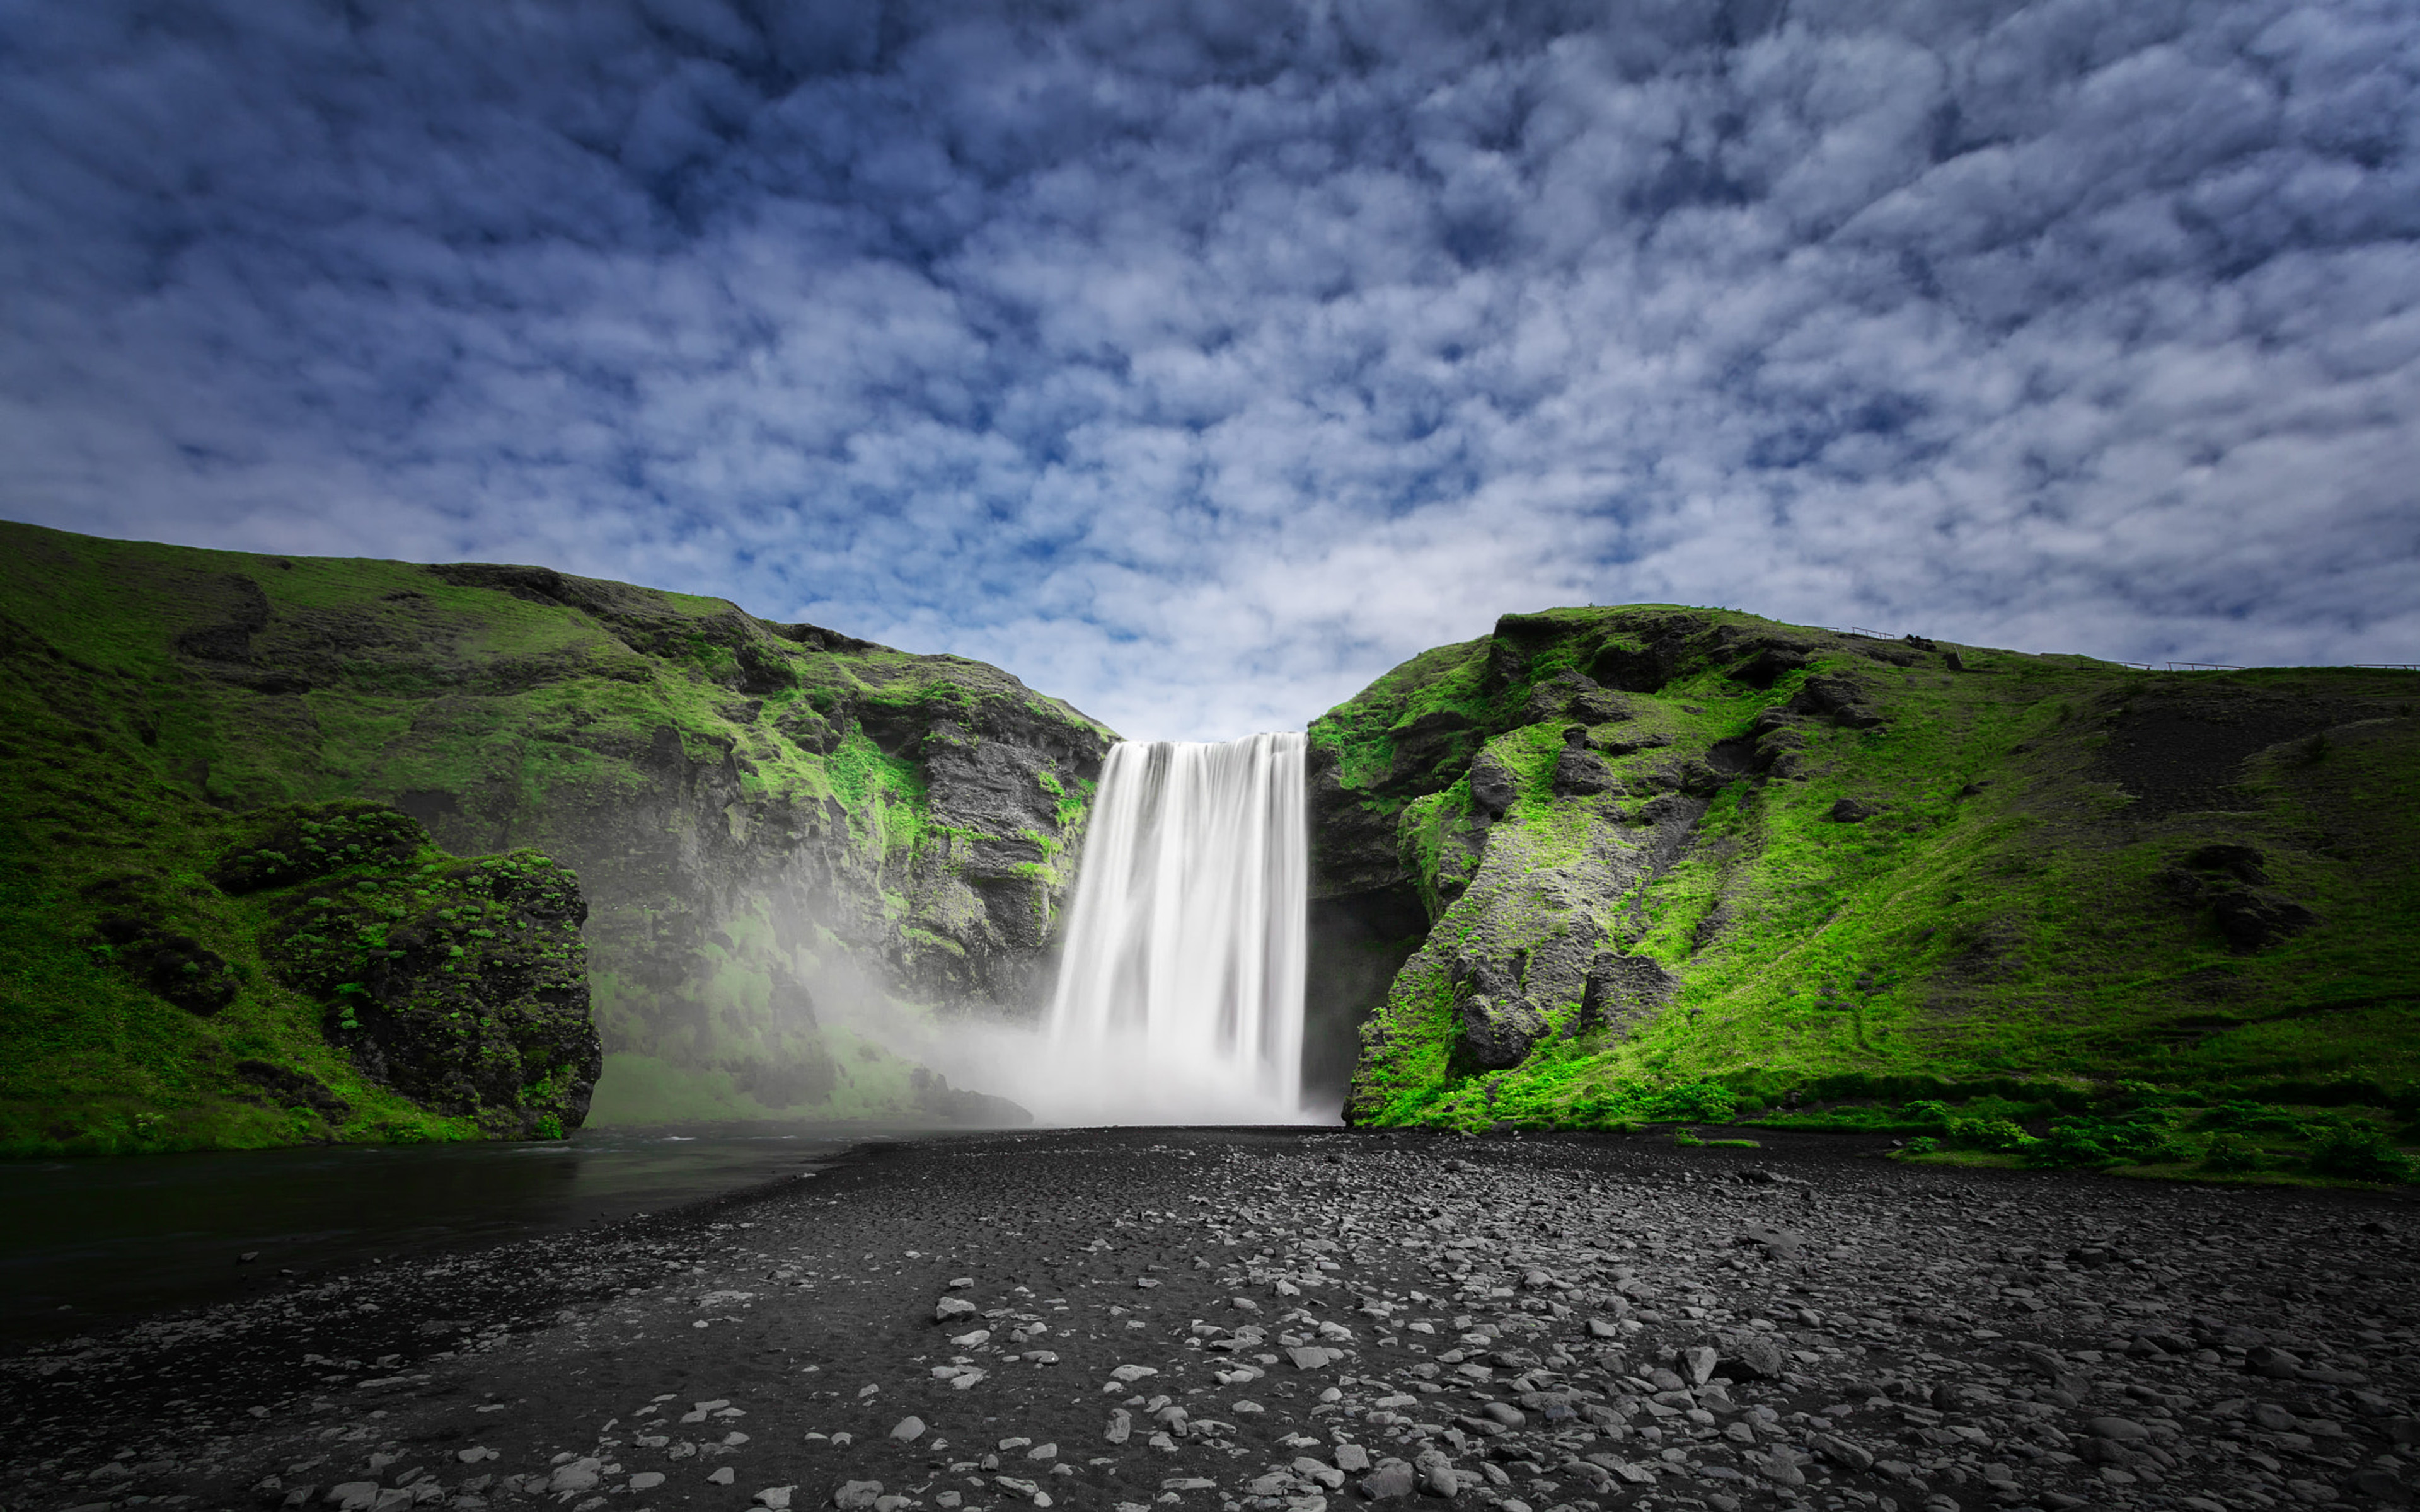 Hd Nature Phone Wallpapers Skogafoss Waterfall On The Sk 243 G 225 River In Iceland Nature